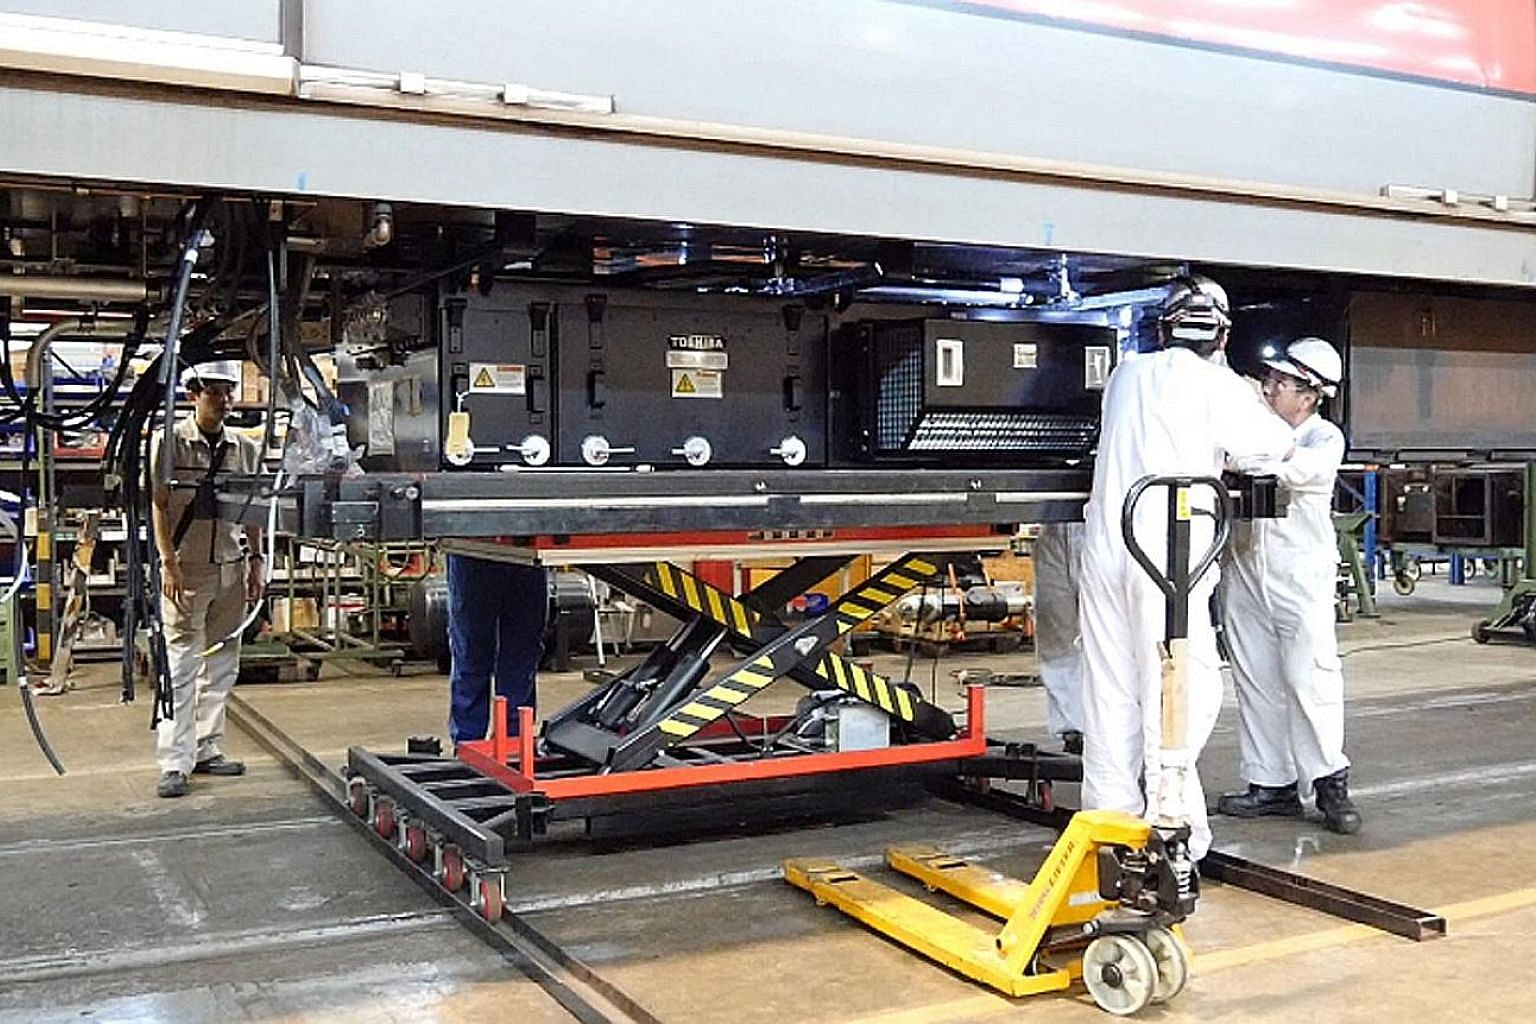 Singapore Rail Engineering had a joint venture with Japan's Toshiba to use and market its train motors.